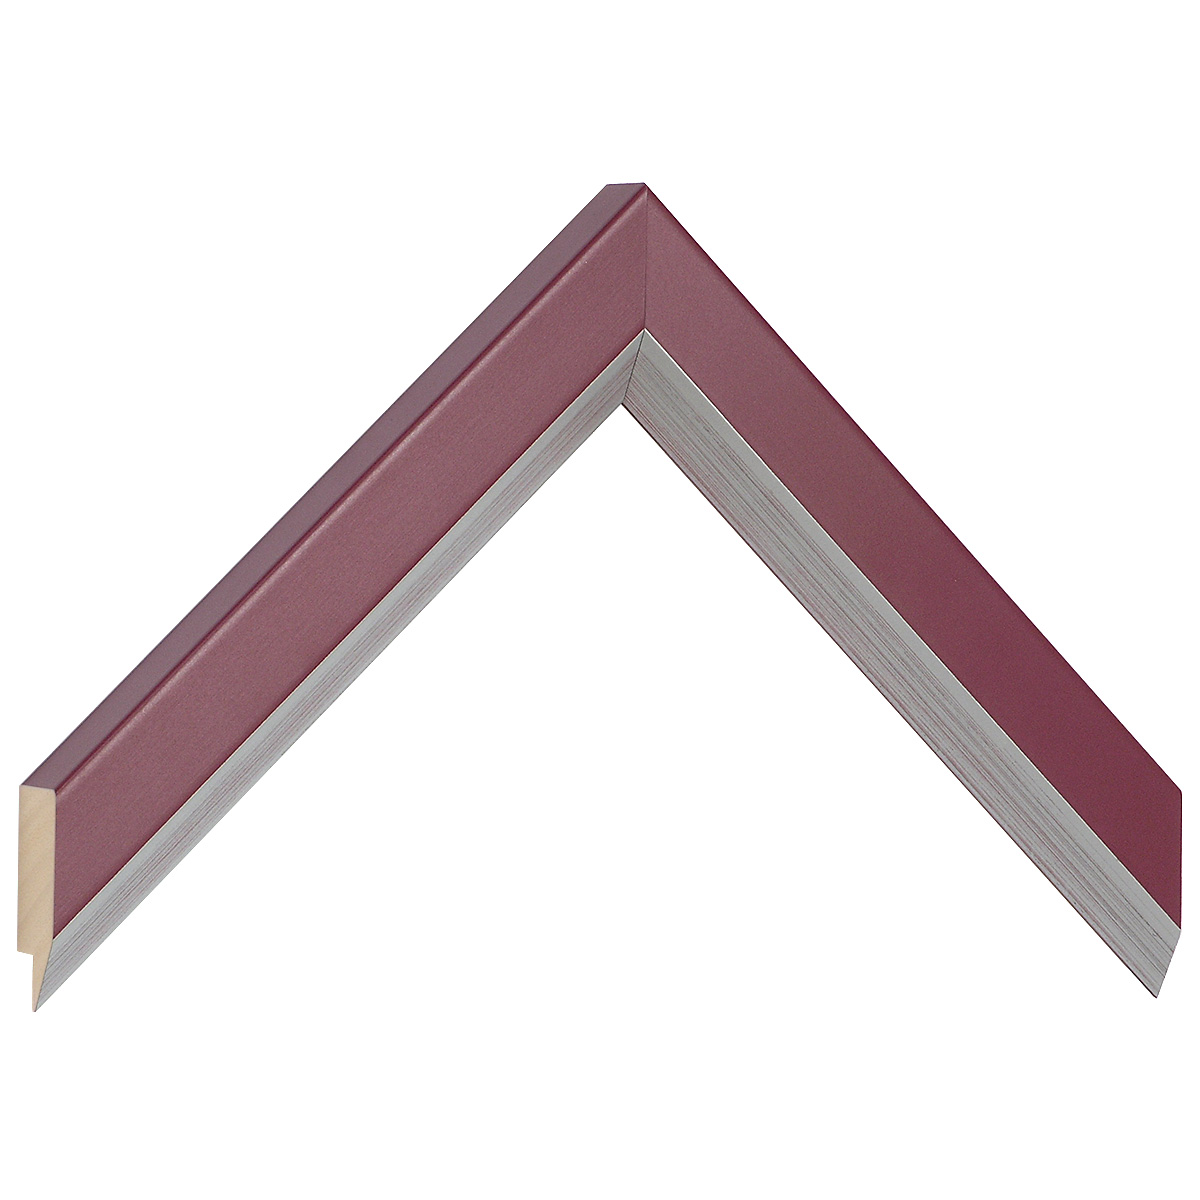 Moulding ayous, width 28mm height 20 - Fuchsia